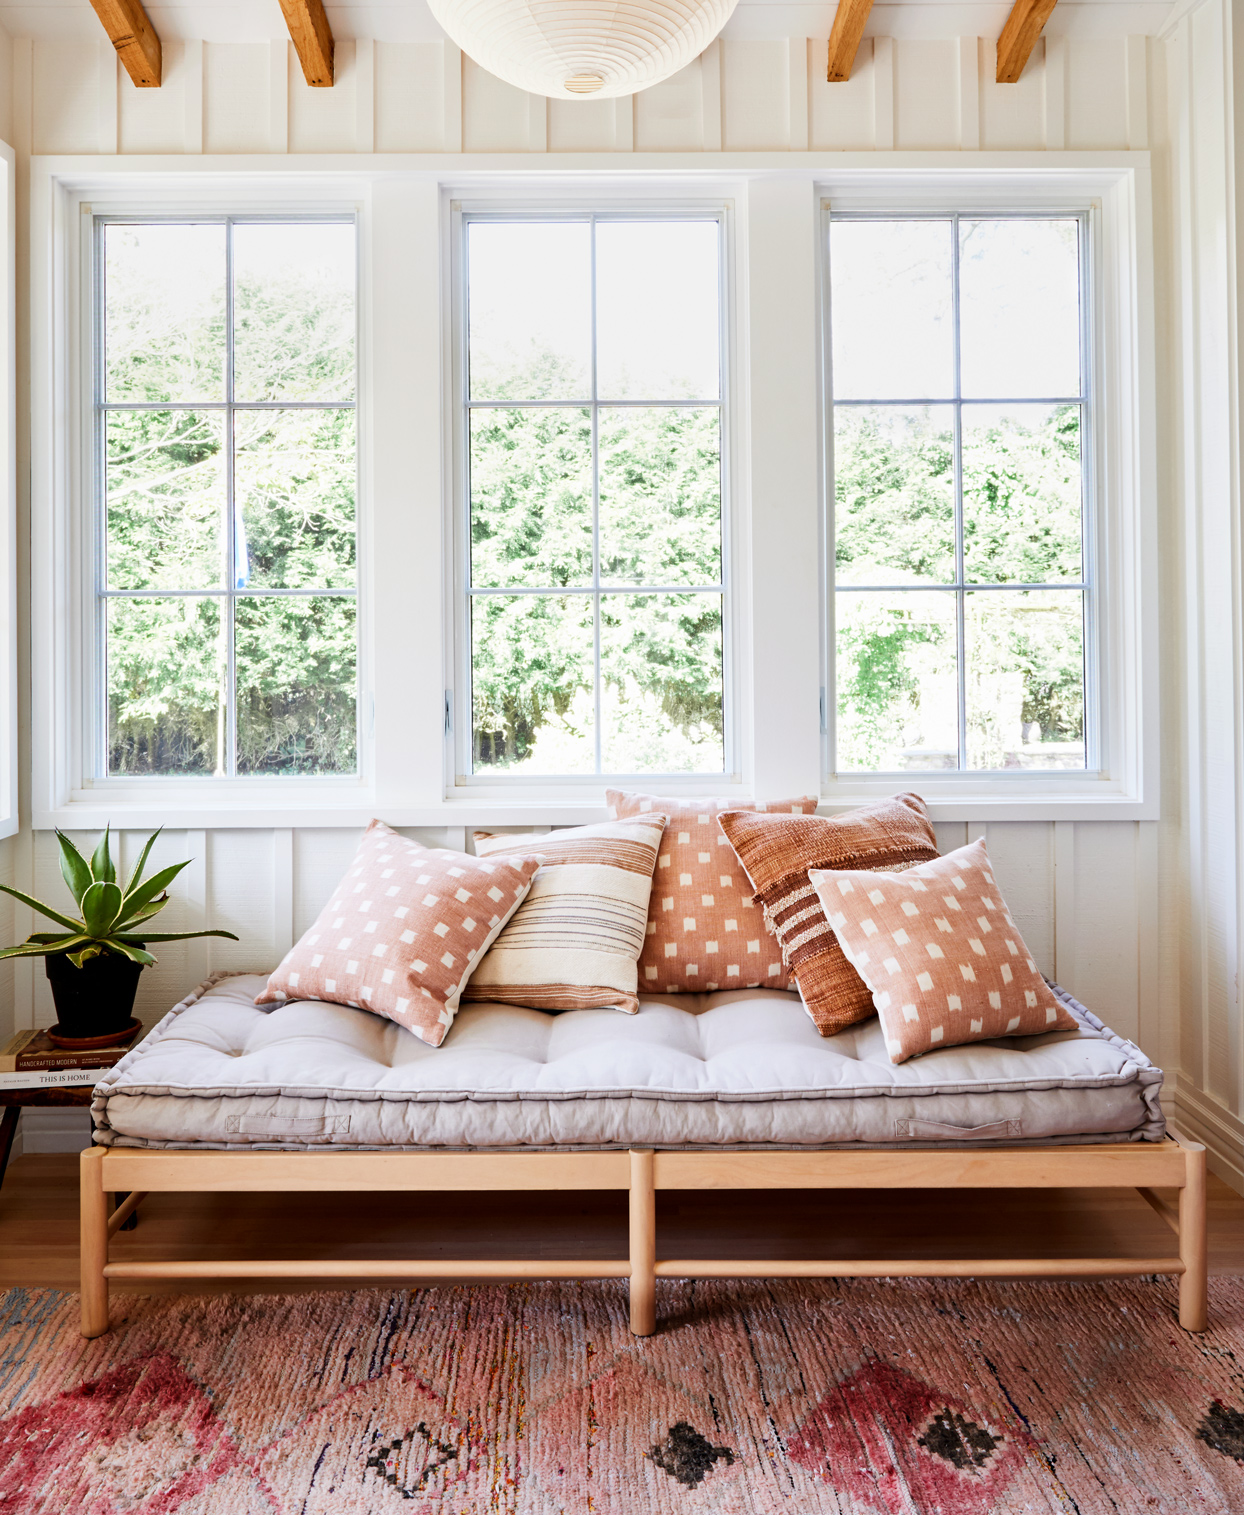 home hideaway daybed and moroccan carpet